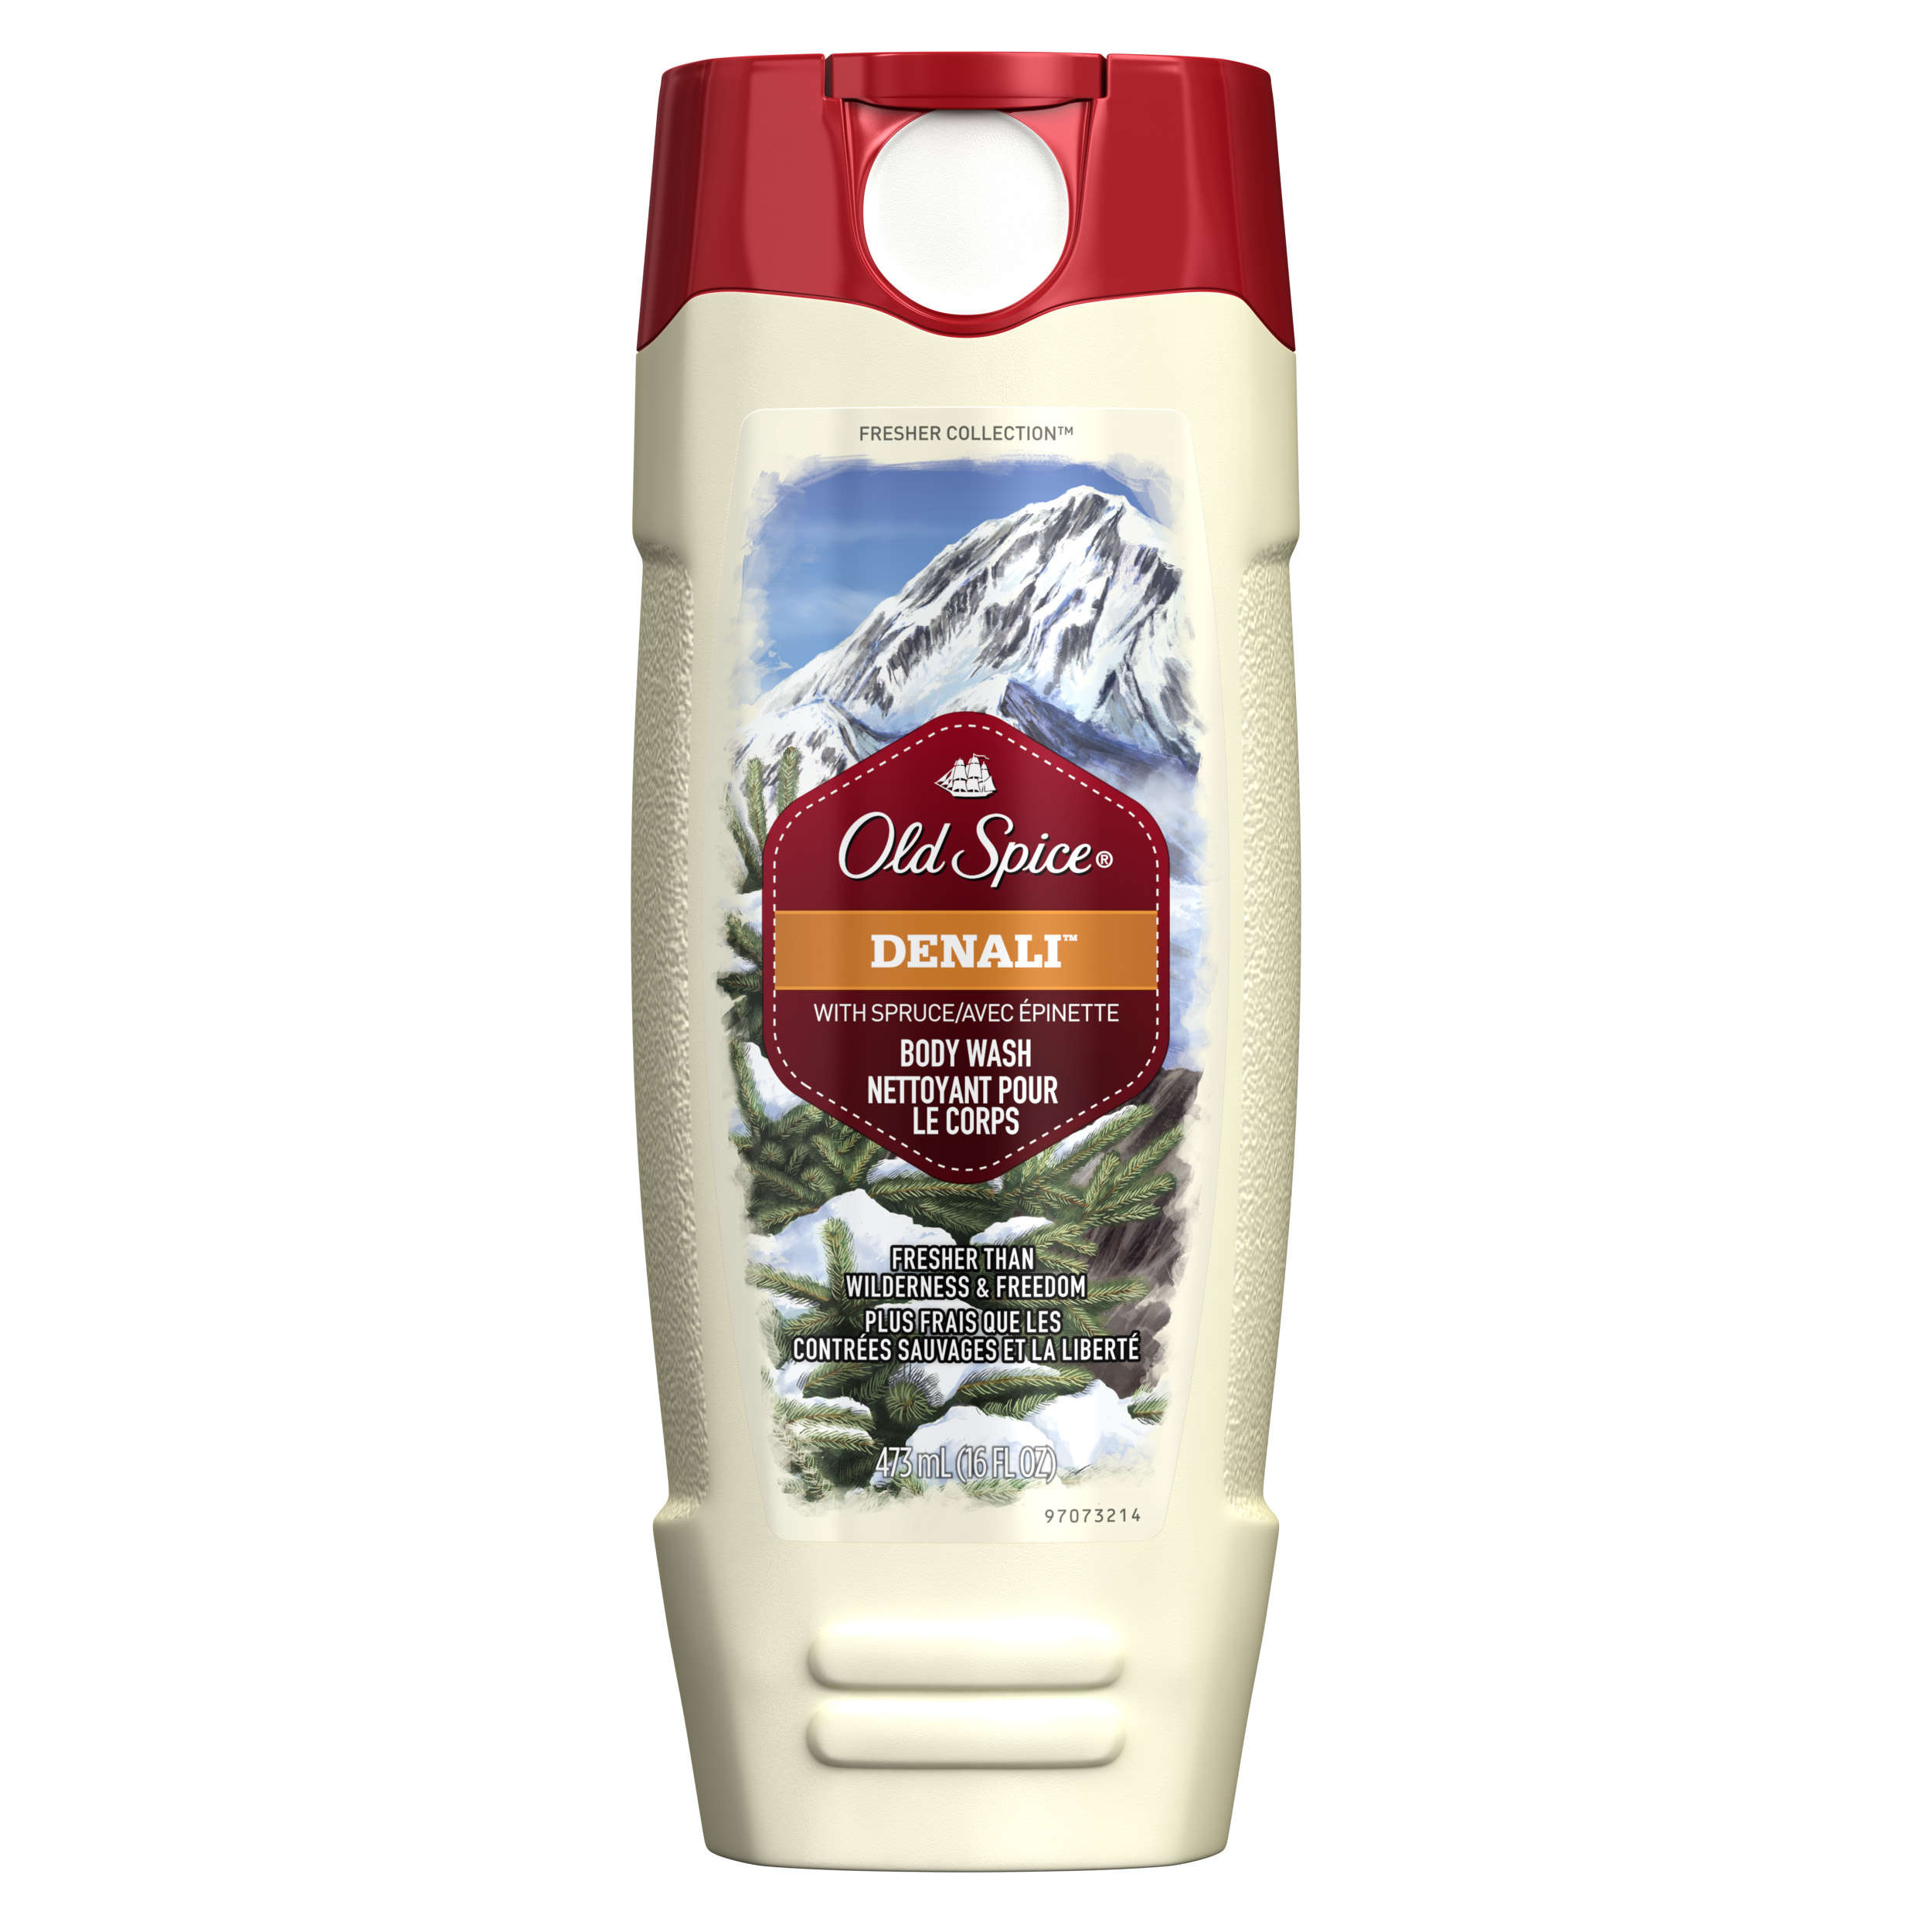 Old Spice Fresher Denali Scent Body Wash for Men, 16 oz